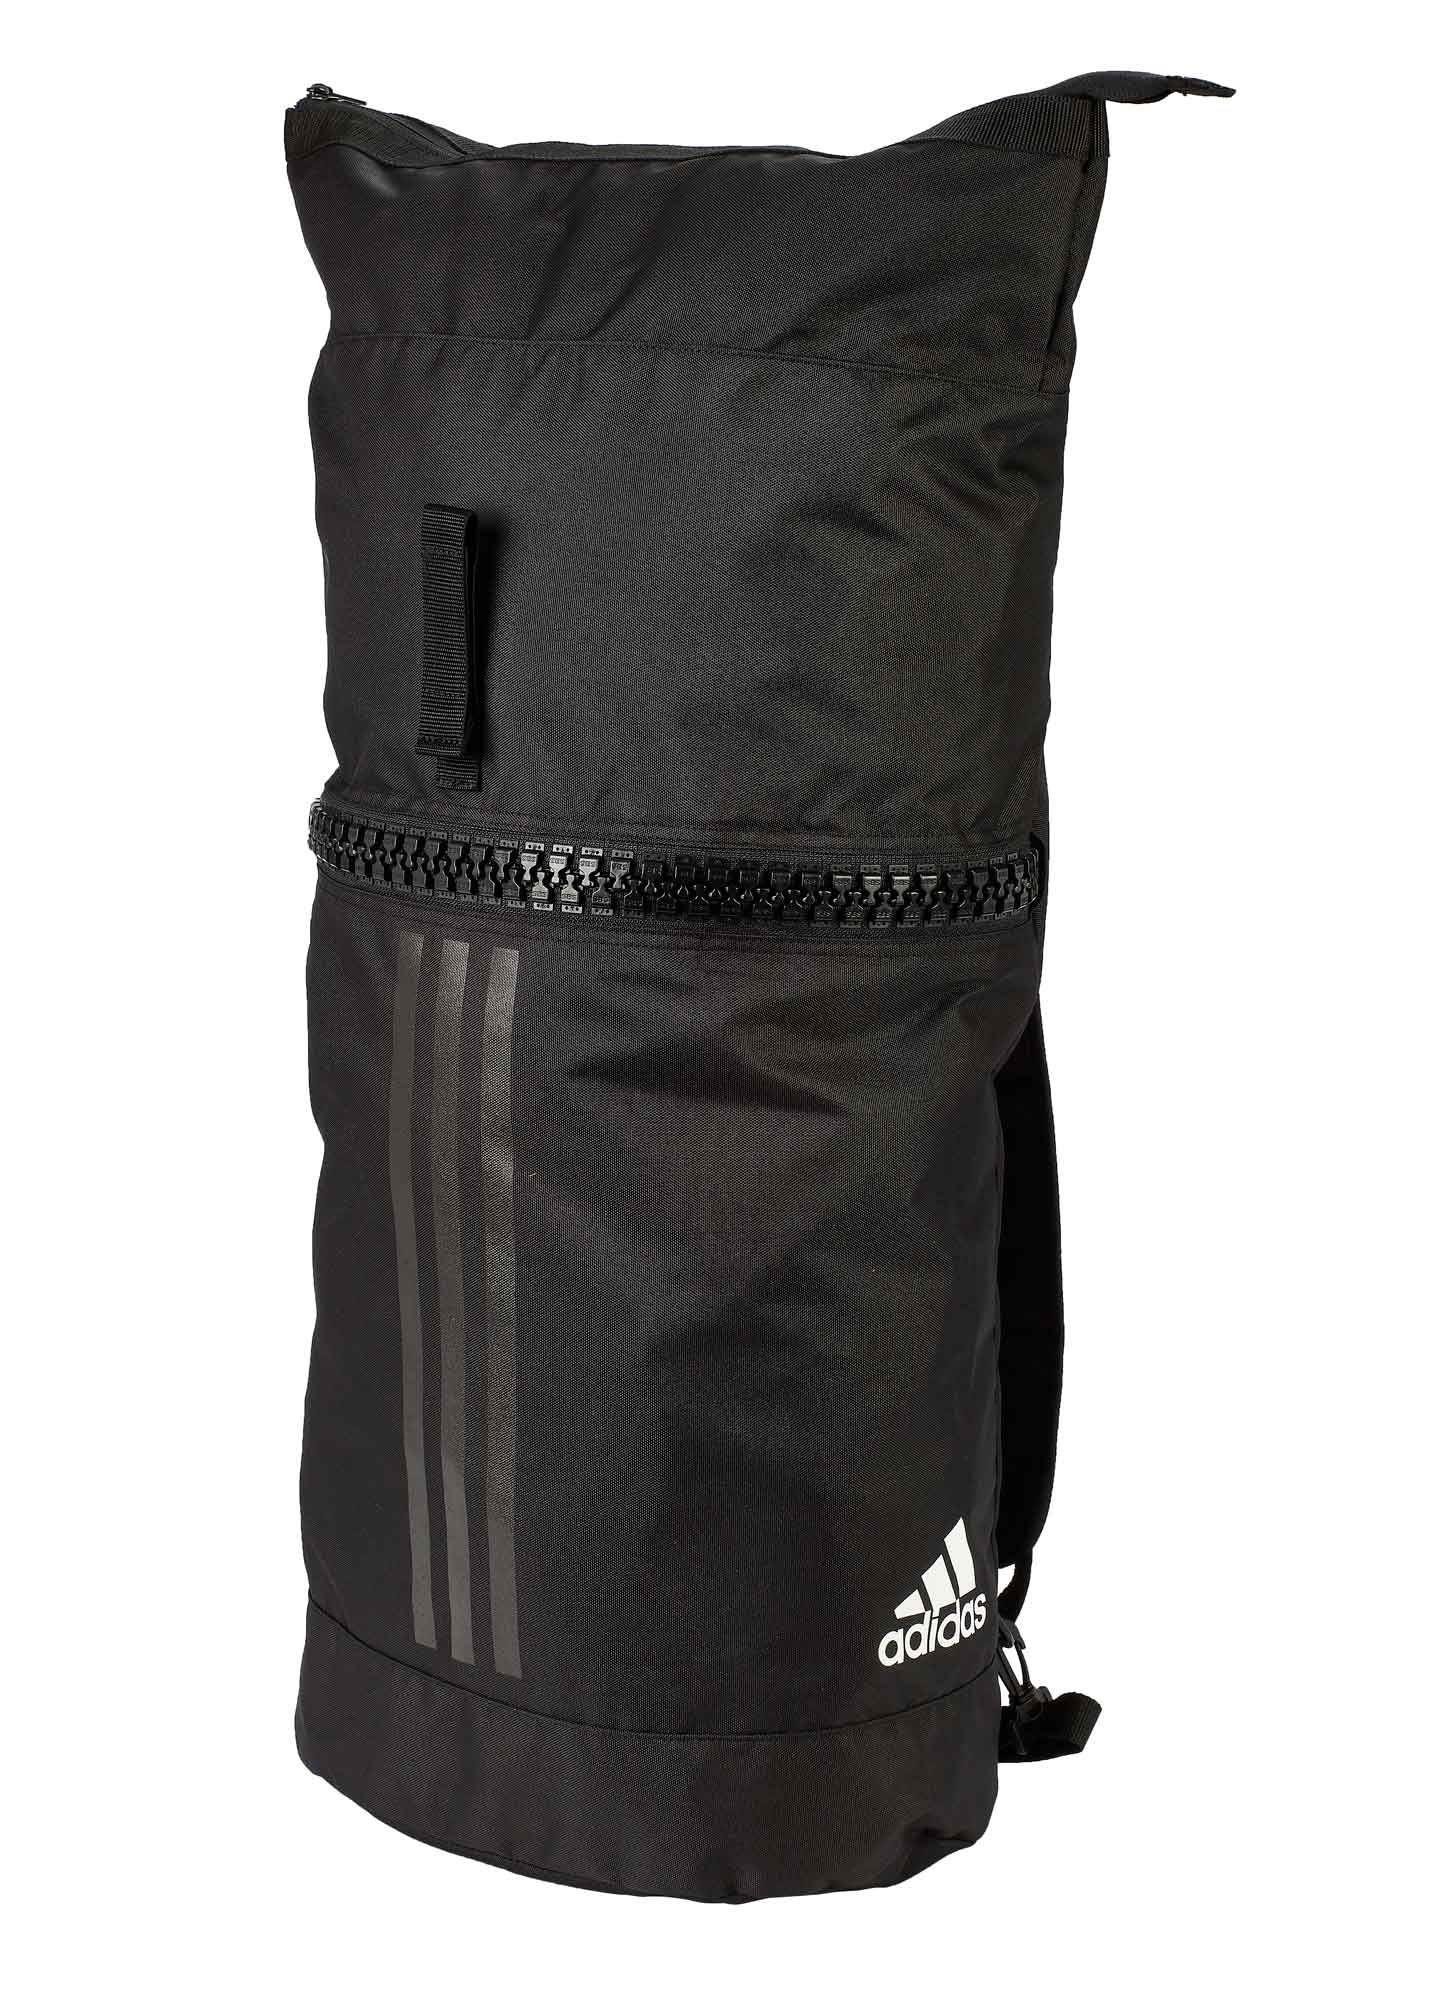 lower price with sneakers for cheap exclusive deals adidas Military Bag Martial Arts black/white adiACC044 Nylon